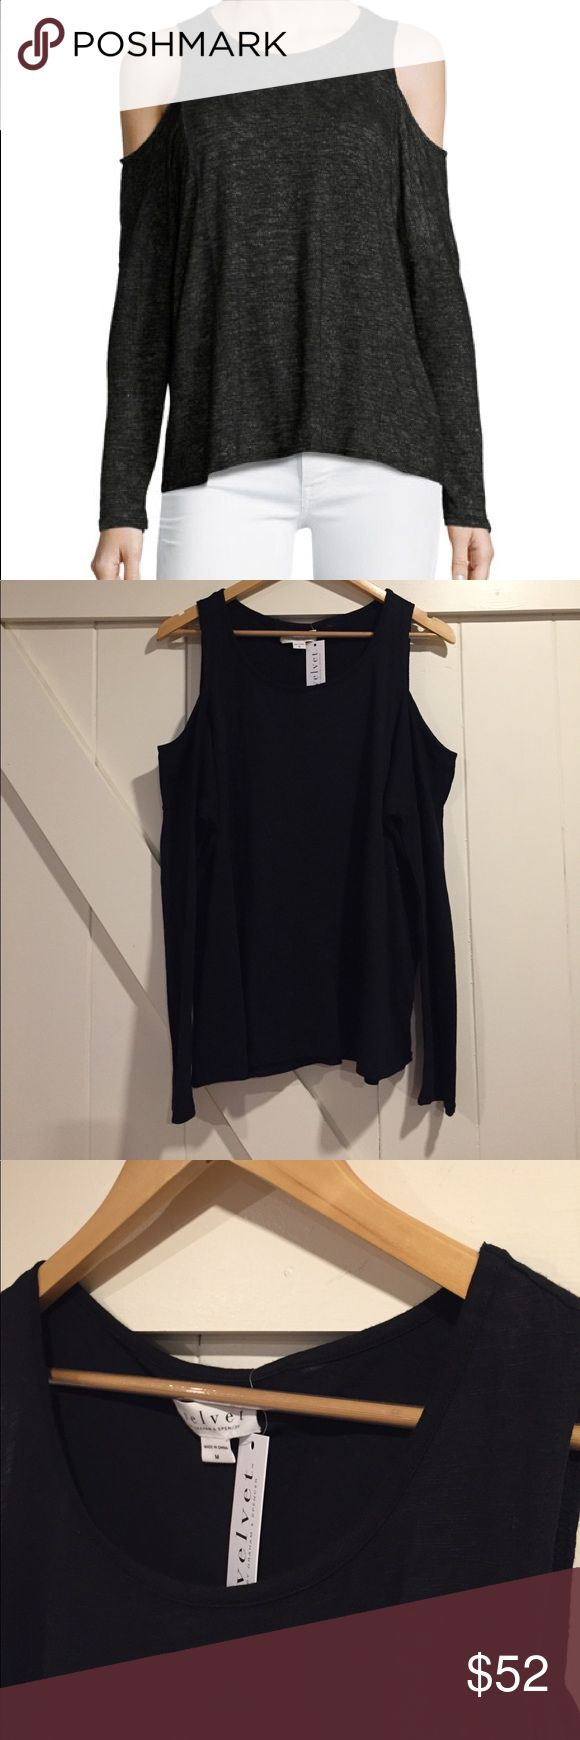 Velvet By Graham & Spencer Cold Shoulder Top-Black Velvet By Graham & Spencer Cold Shoulder Top-Black. NEW with tags! Round neckline, Cold shoulders, Long sleeves, Relaxed fit, Pullover style. Velvet by Graham & Spencer Tops Tees - Long Sleeve